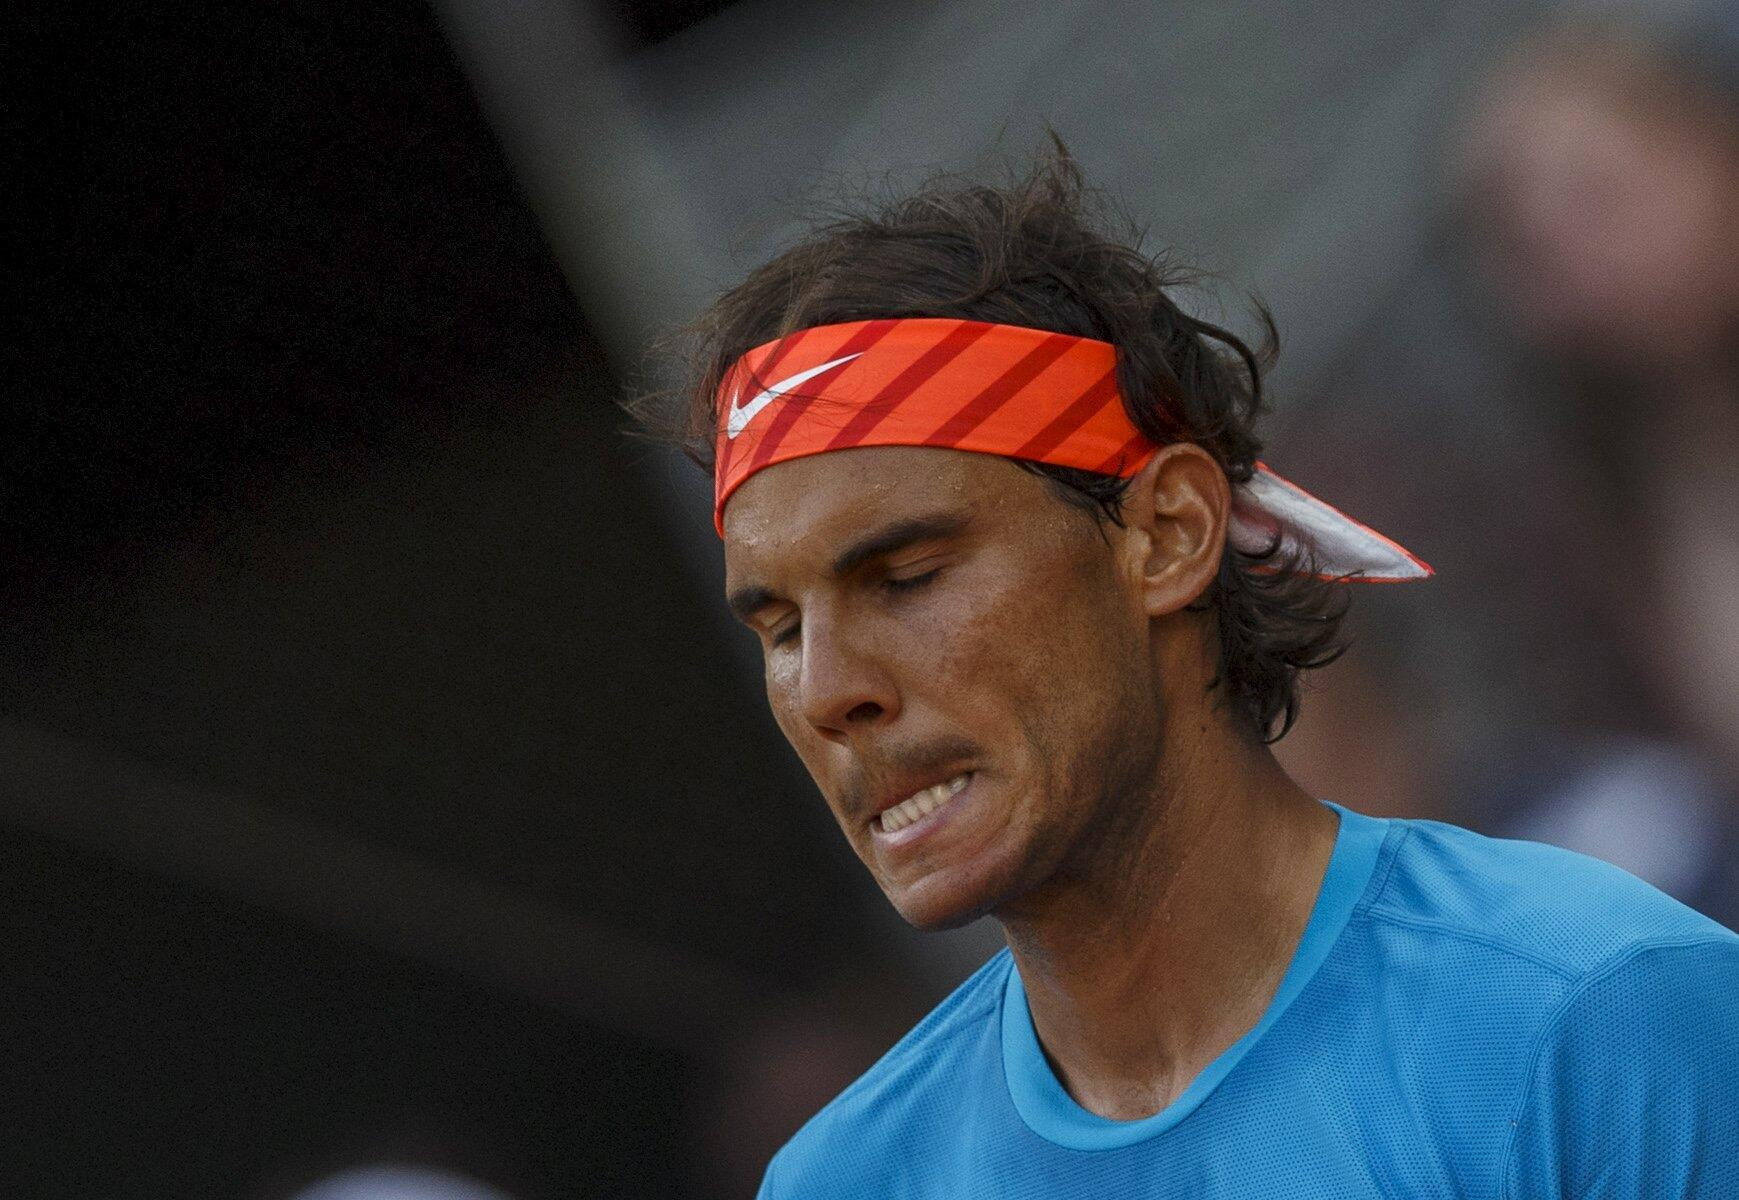 Rafael Nadal has won a record nine titles at the French Open